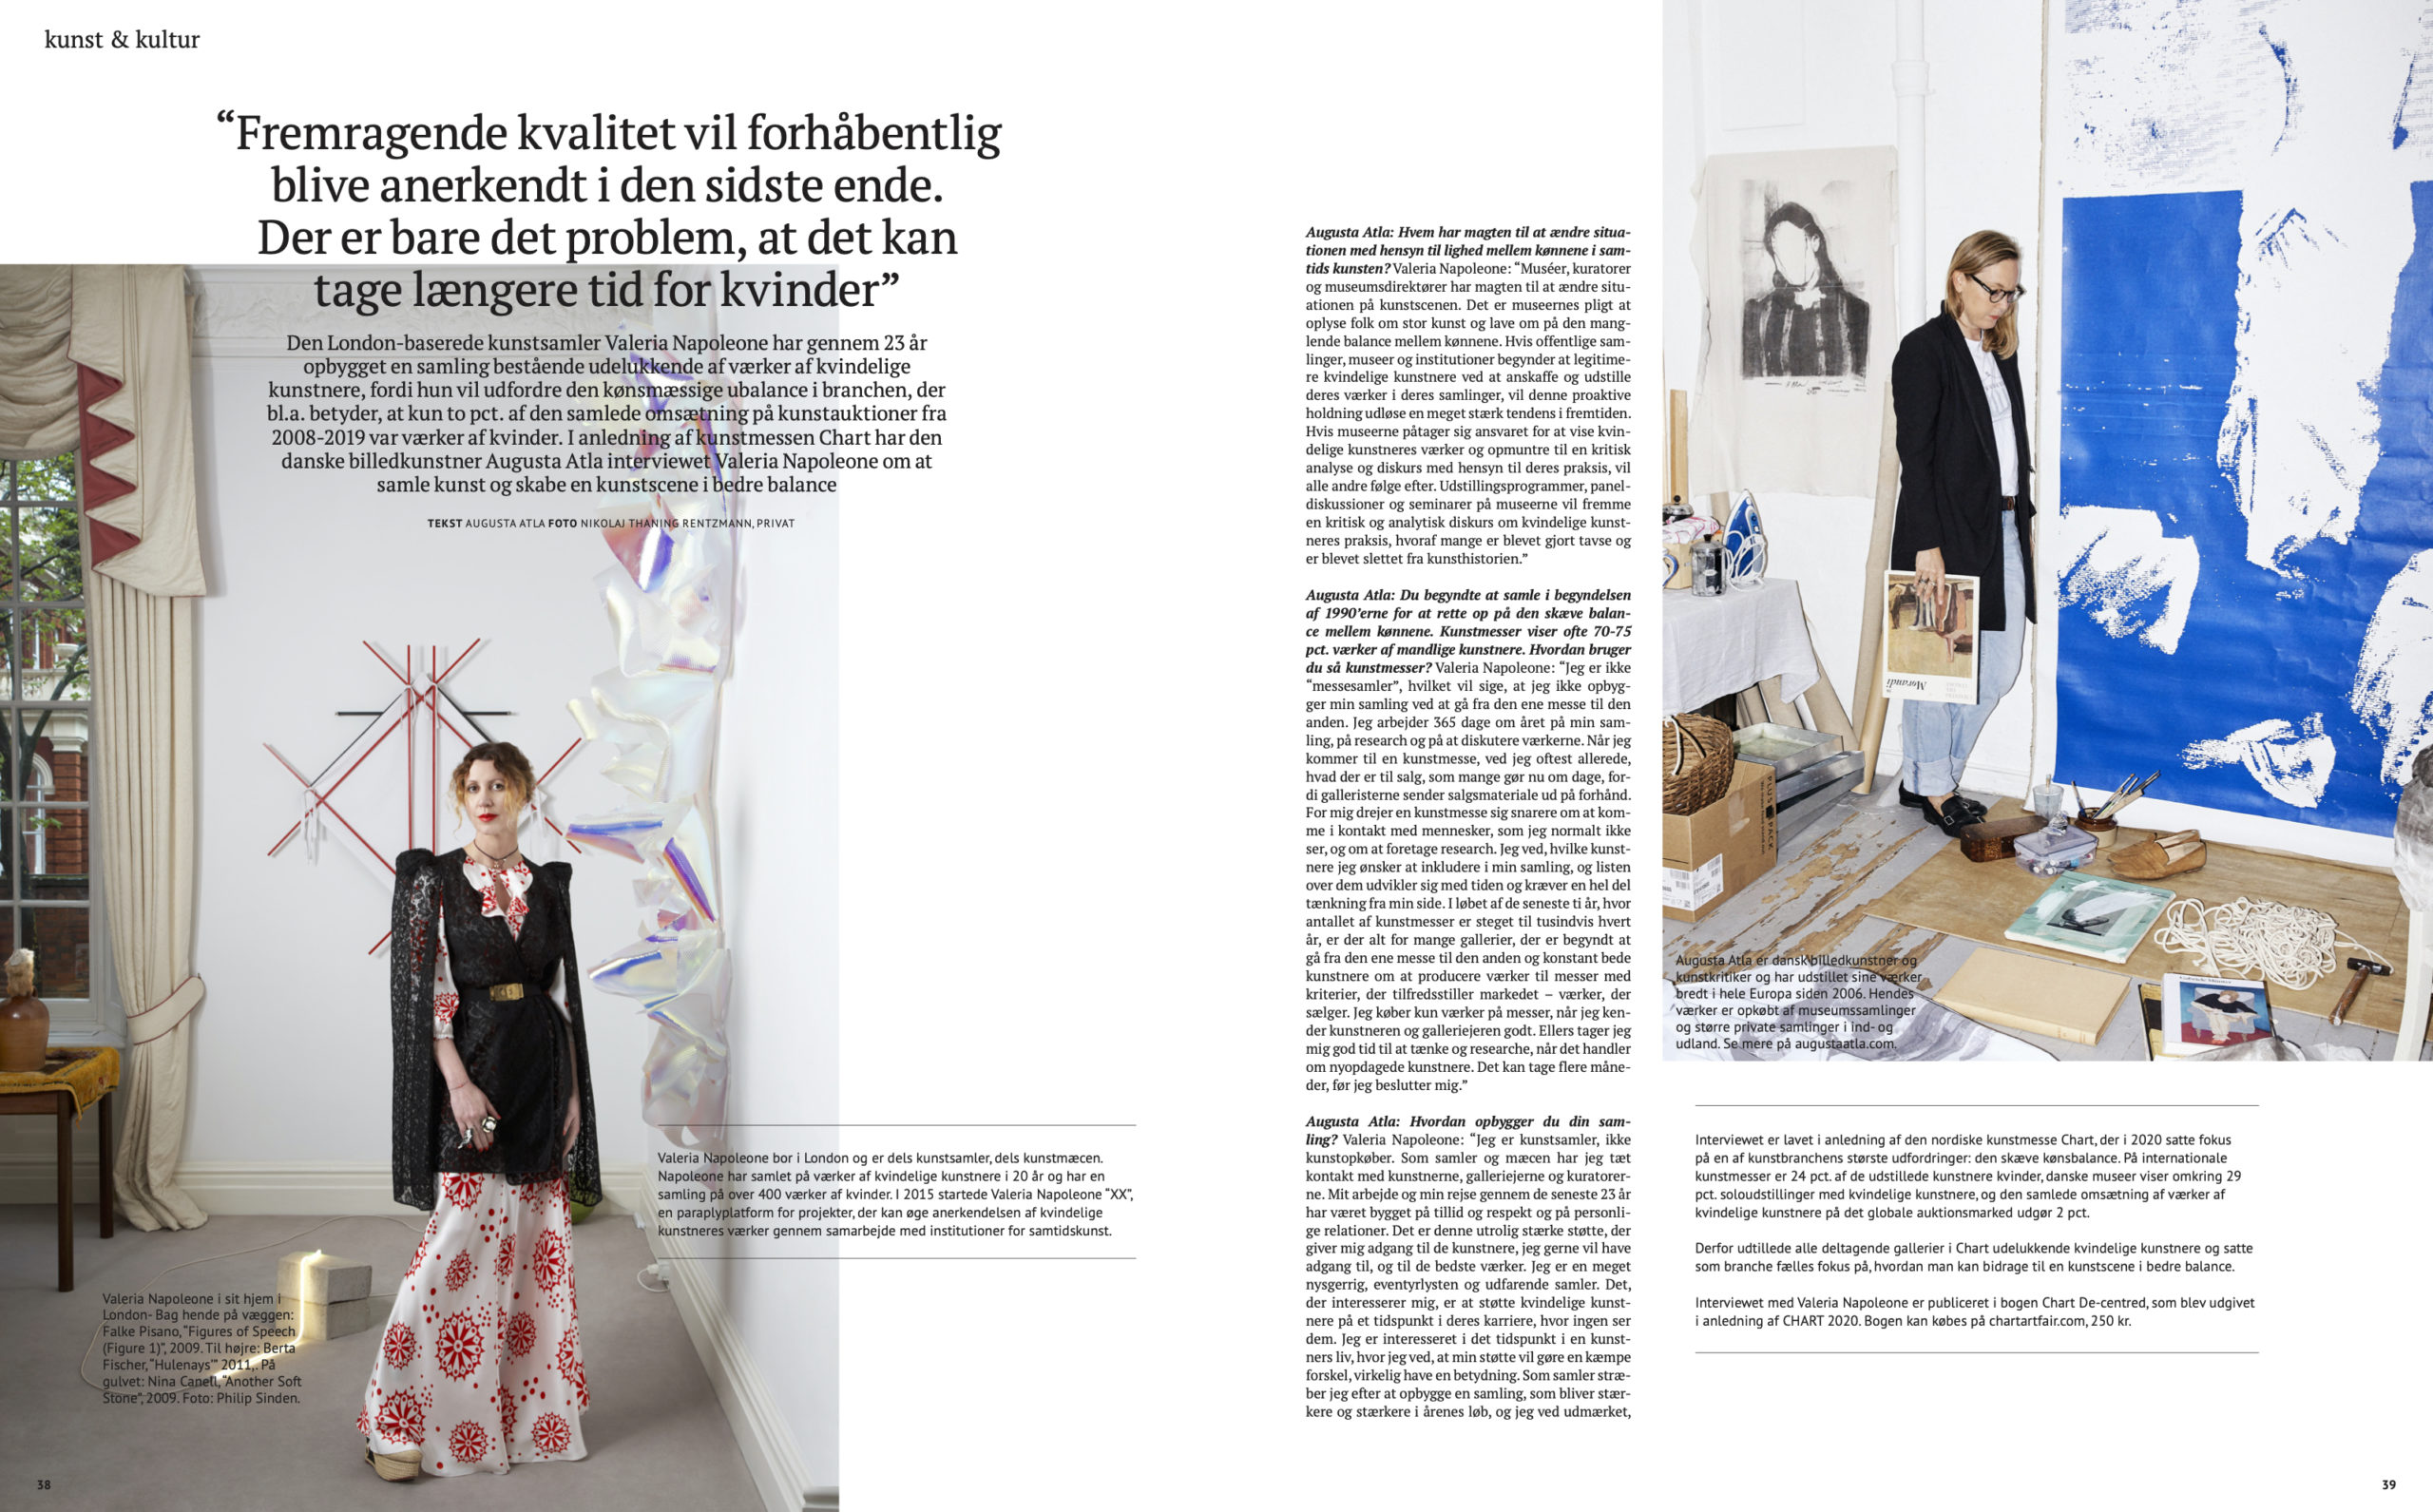 Interview with Valeria Napoleone by the Danish artist Augusta Atla in Børsen Pleasure 2020